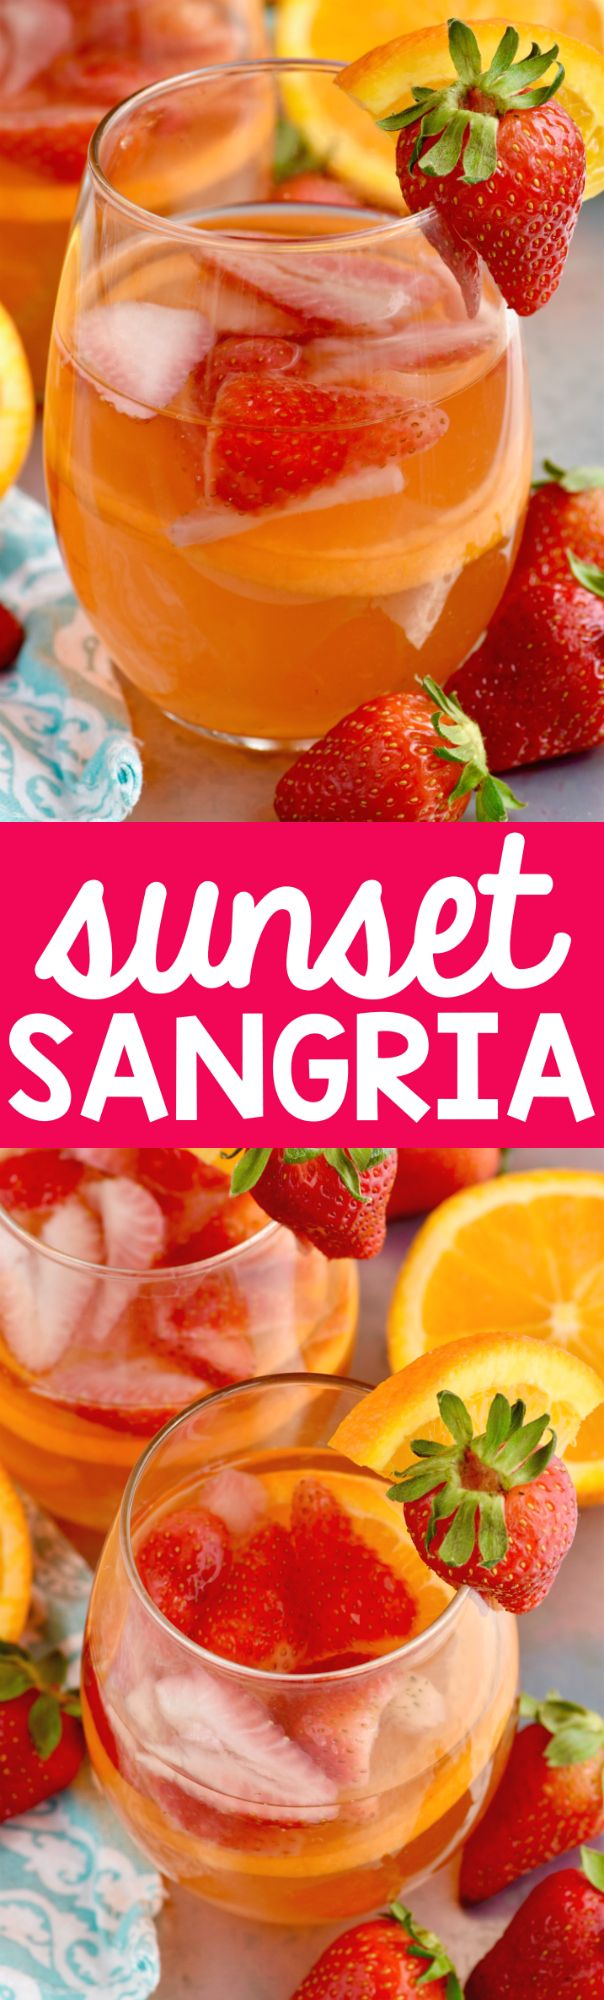 This Sunset Sangria is made with orange, strawberry, rum and will quickly become a favorite!: